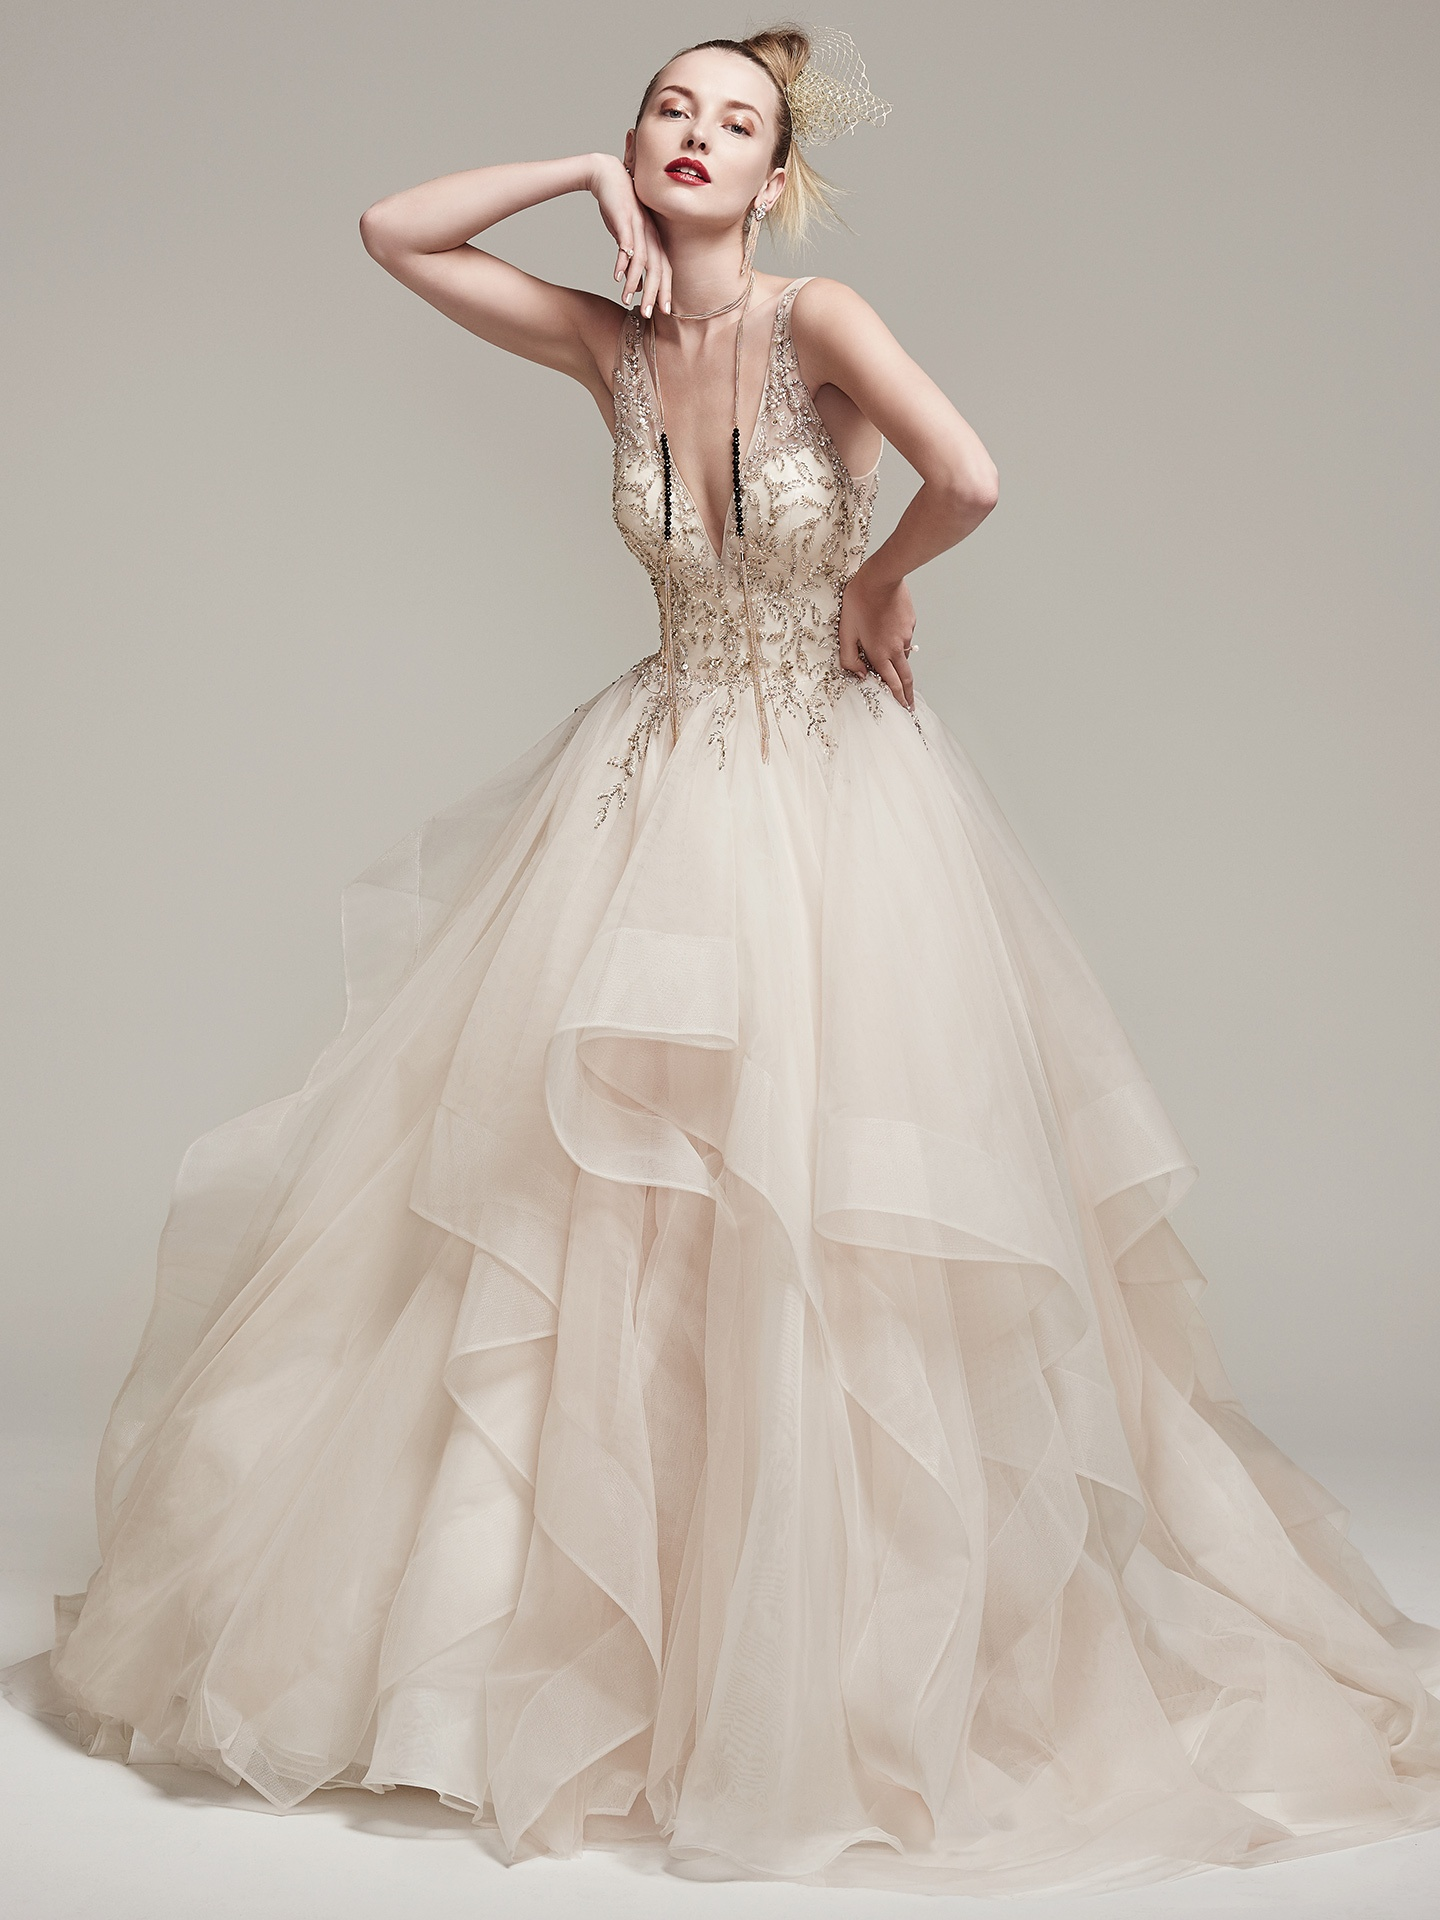 AMÉLIE by Sottero and Midgley. Dione organza creates the dramatic princess wedding gown with horsehair layered ballgown skirt, featuring a breathtaking bodice adorned with Swarovski crystals and pearls, plunging illusion V-neckline and back.